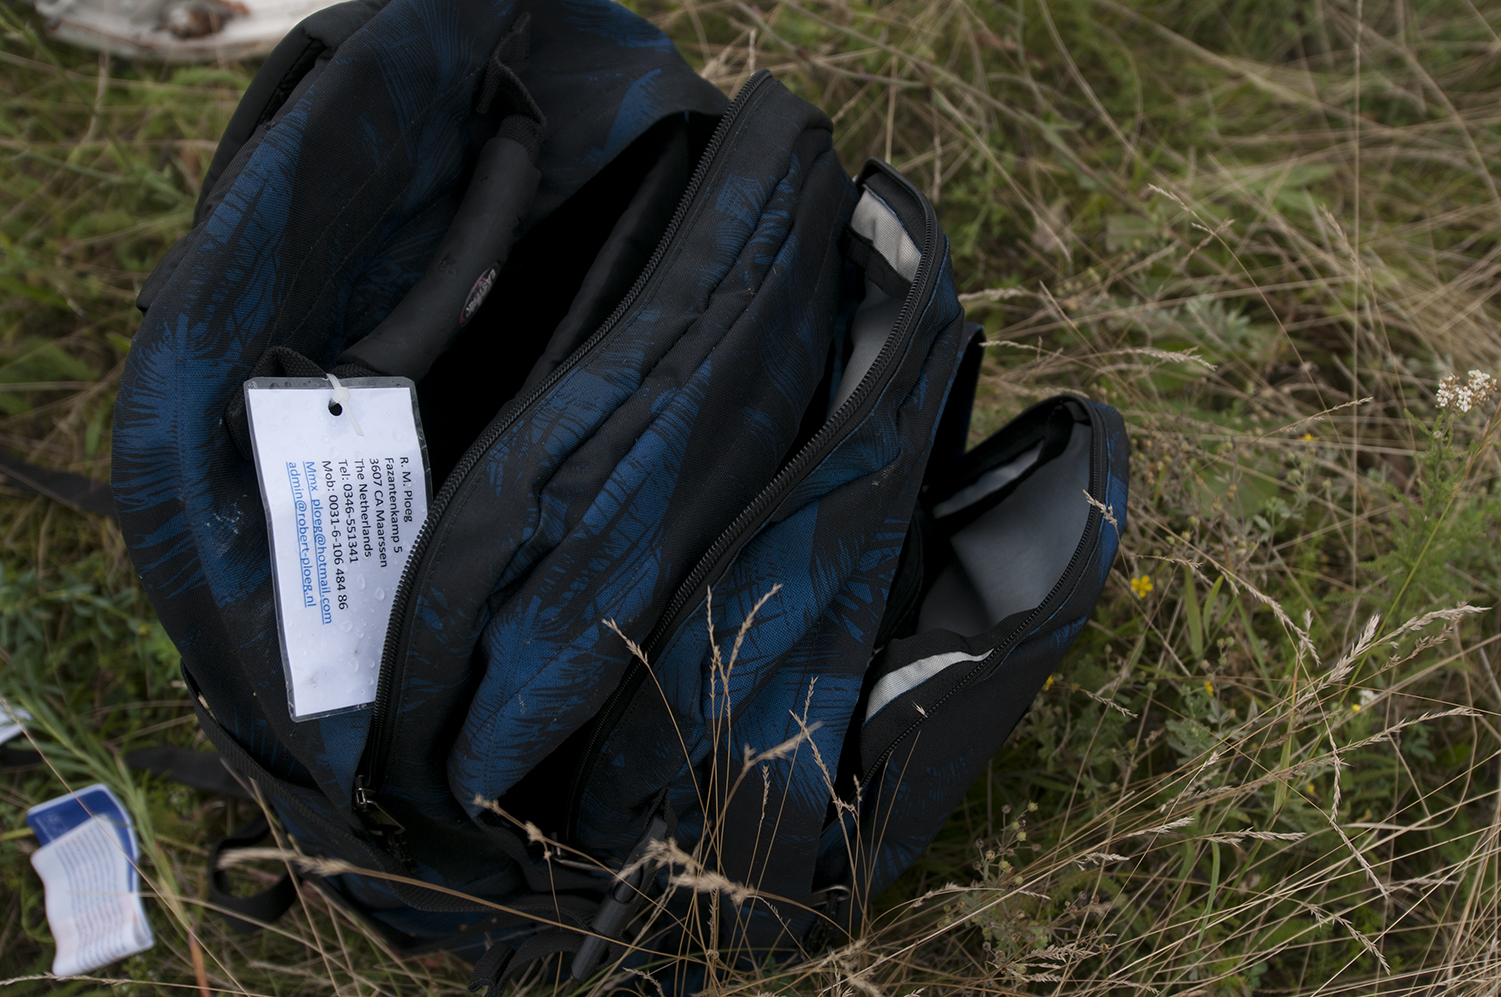 An open and empty bag belonging to one of the passengers sitting on the ground, some looting have been reported on the crash site during the night.